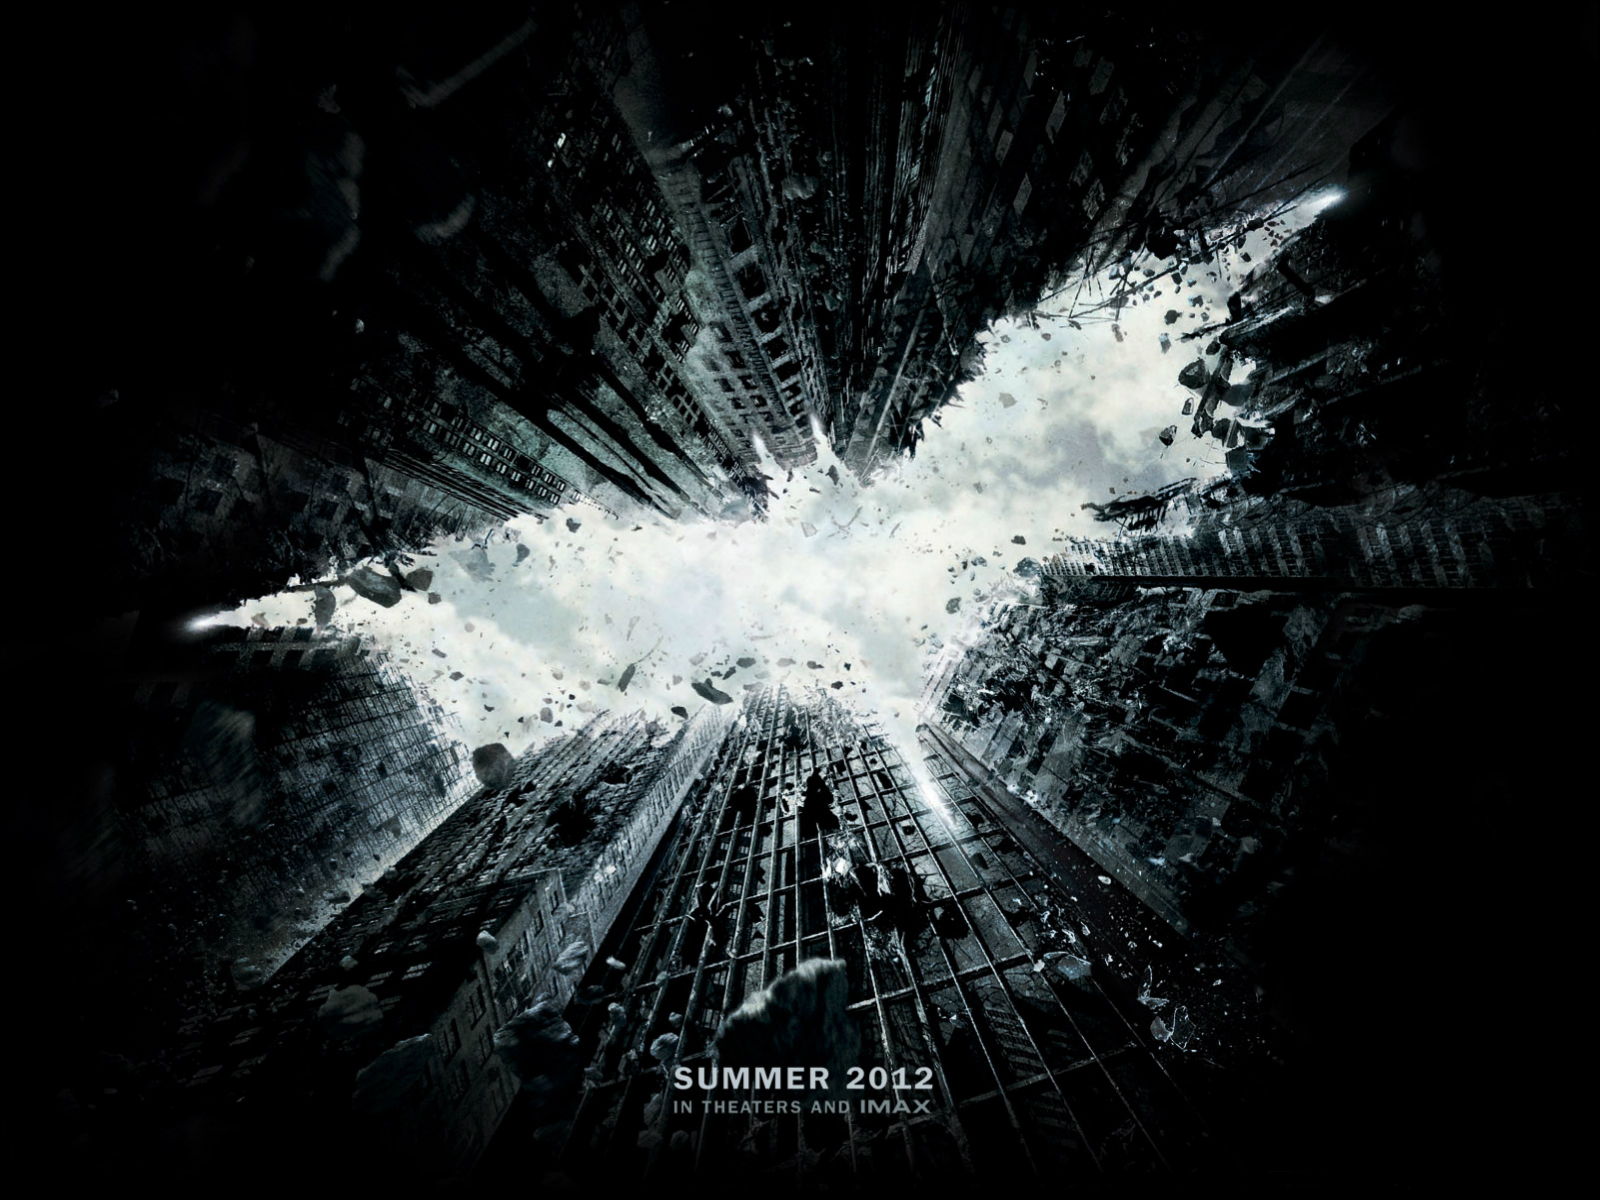 The Dark Knight Rises First Wallpaper Poster   Movie Wallpapers 1600x1200